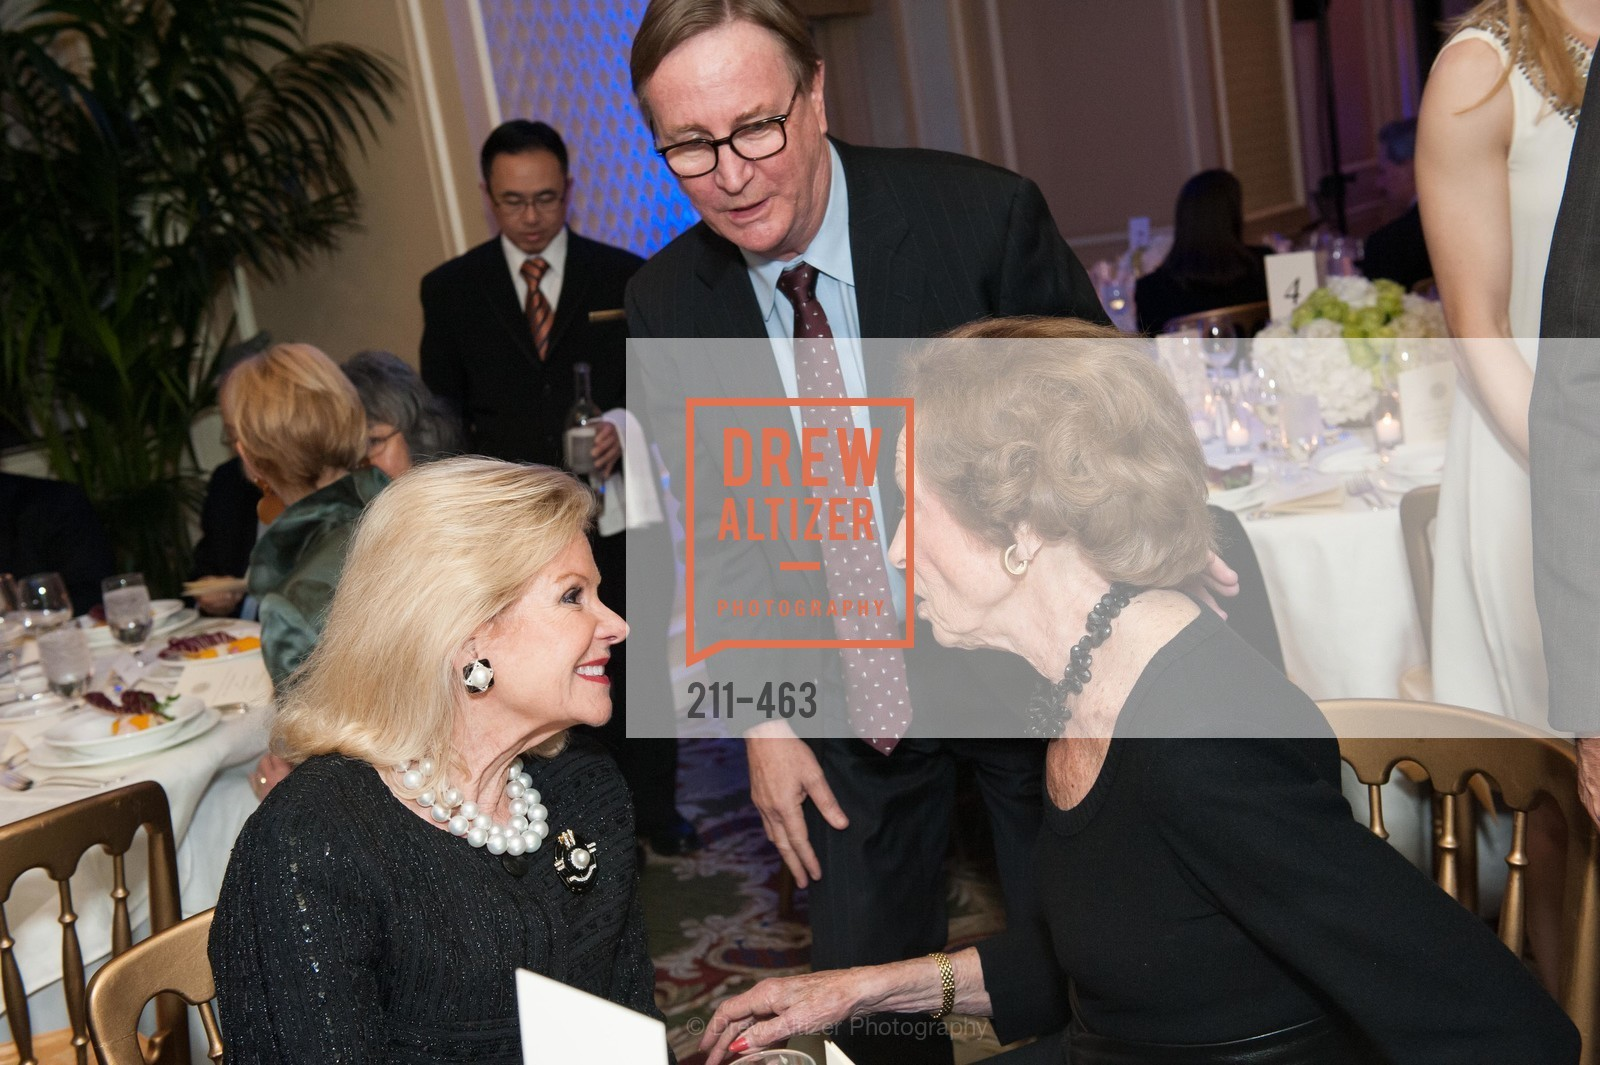 Dede Wilsey, Sam Hawgood, Doris Fisher, UCSF Nina Ireland Program for Lung Health Dinner, US. The Terrace Room, The Ritz-Carlton Hotel, January 15th, 2014,Drew Altizer, Drew Altizer Photography, full-service event agency, private events, San Francisco photographer, photographer California